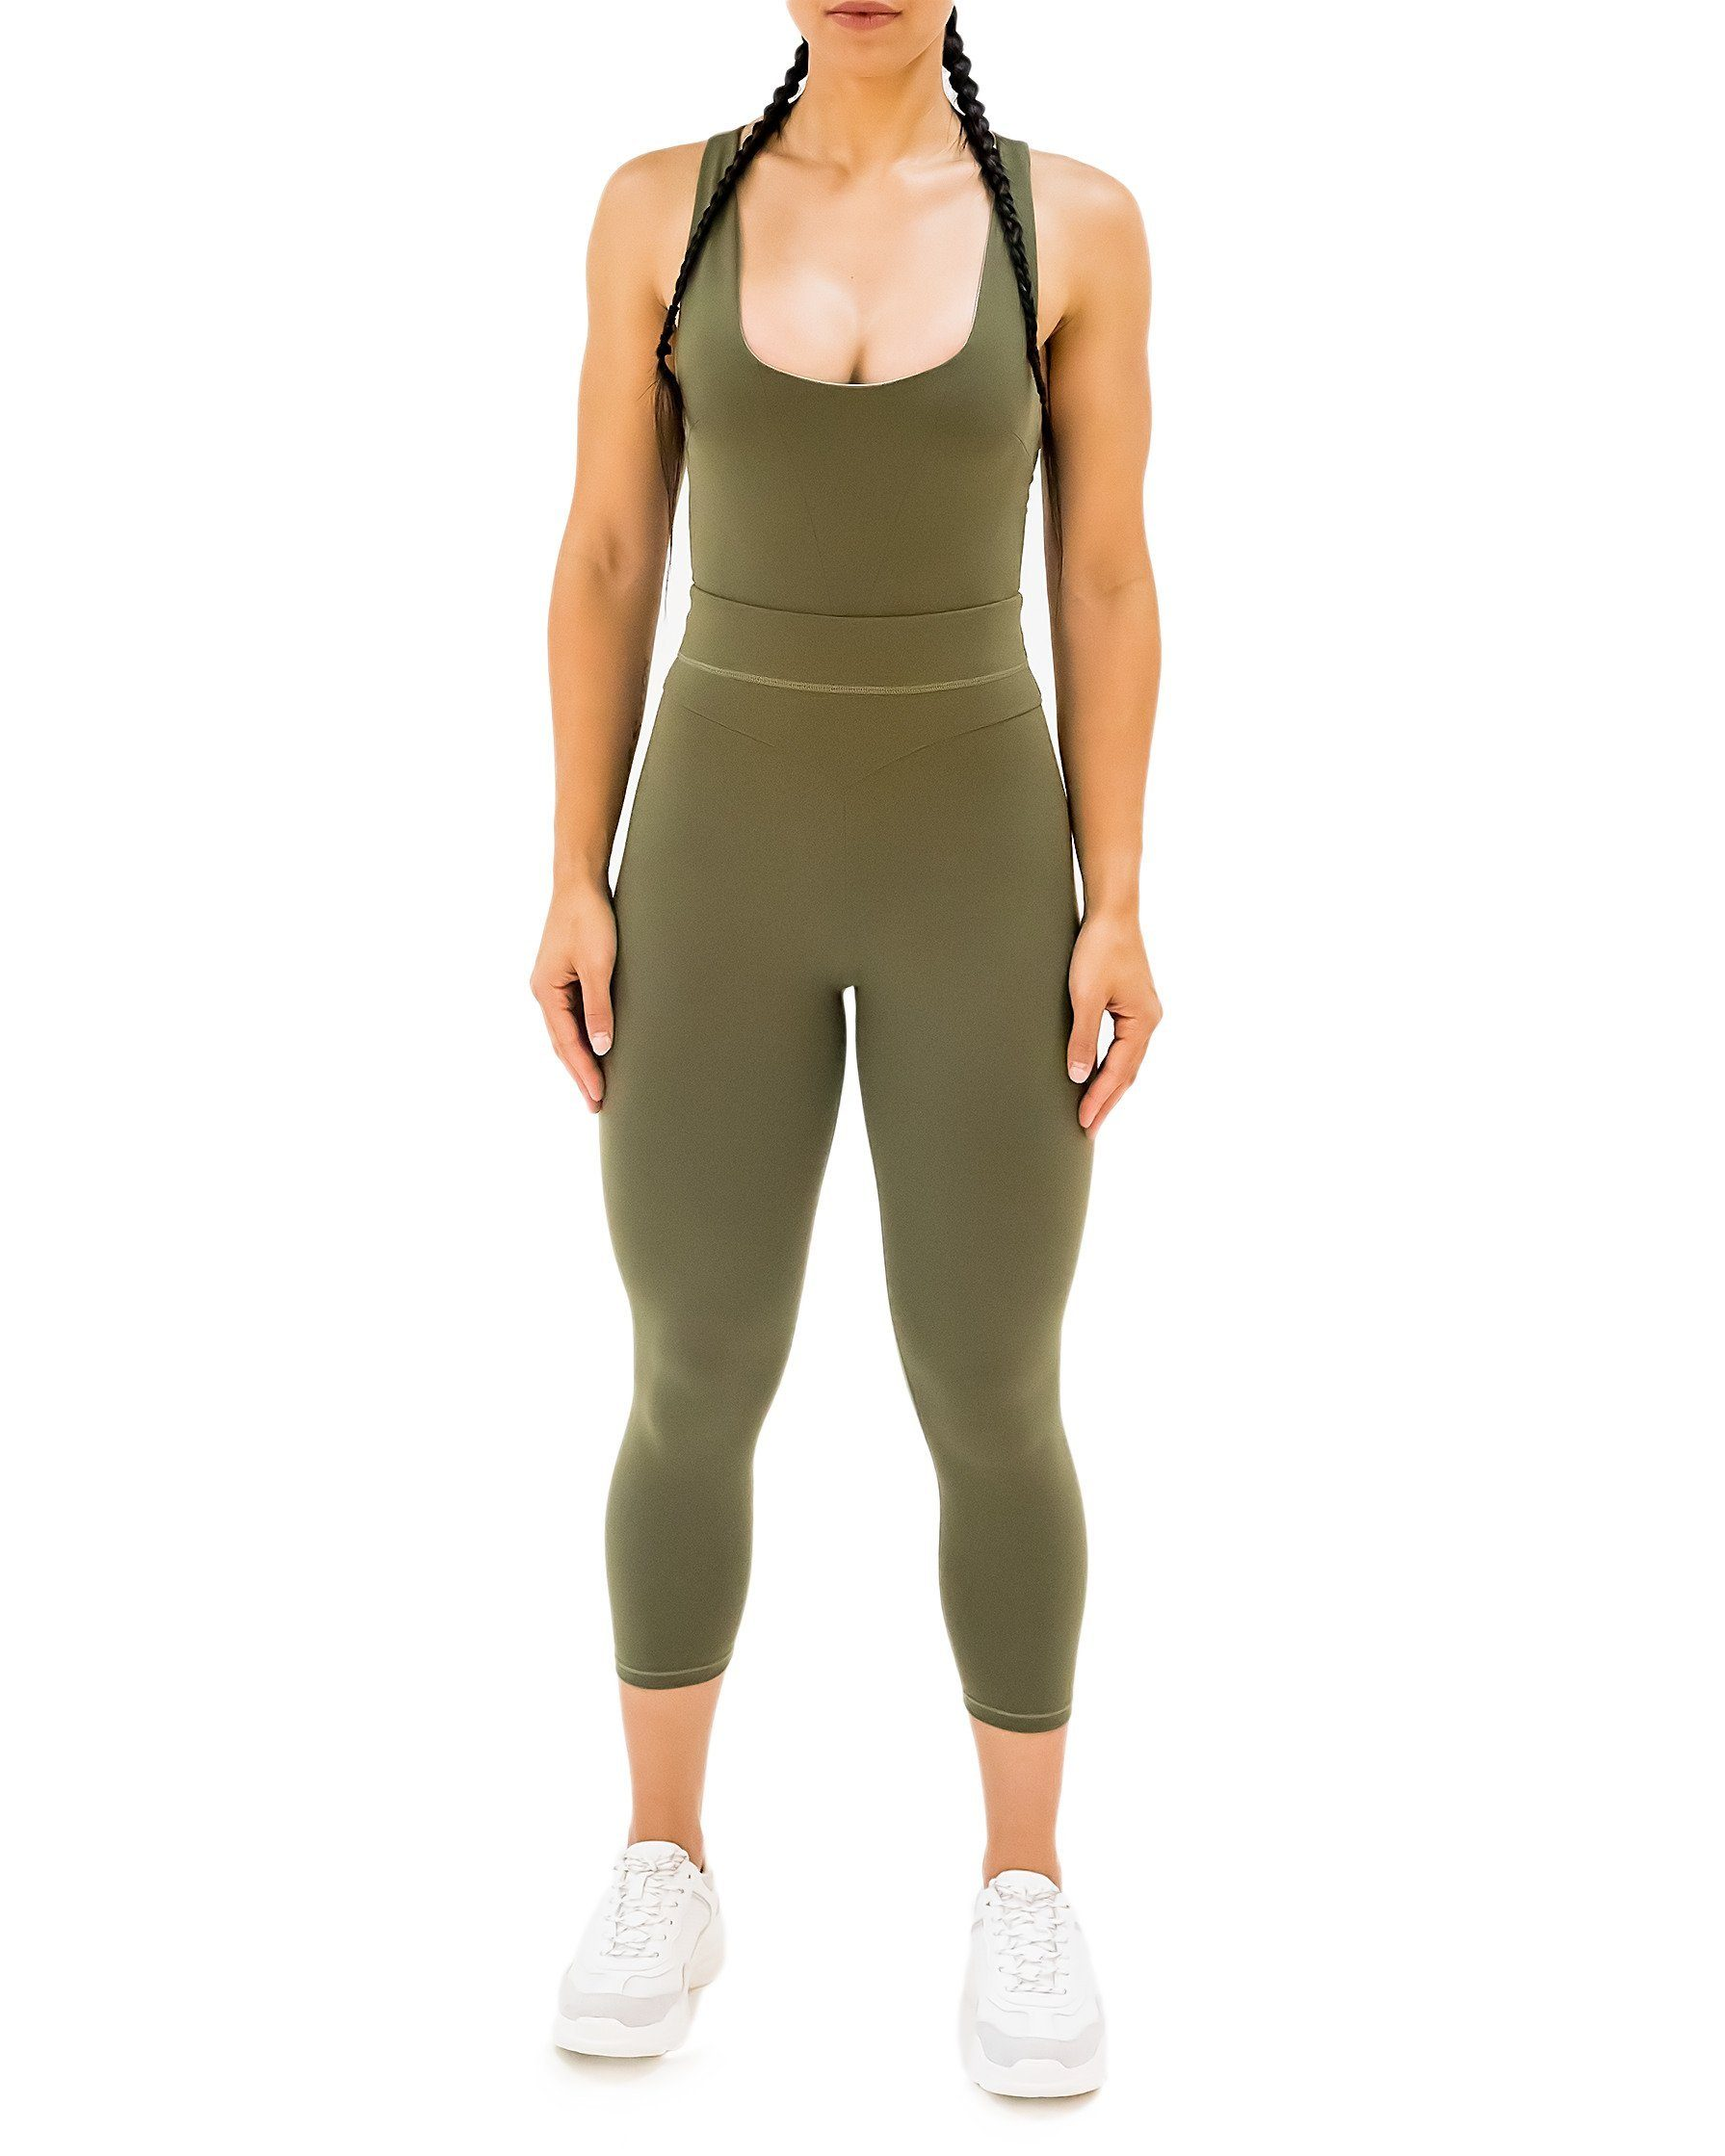 GIGI Rose Jumpsuit - Khaki